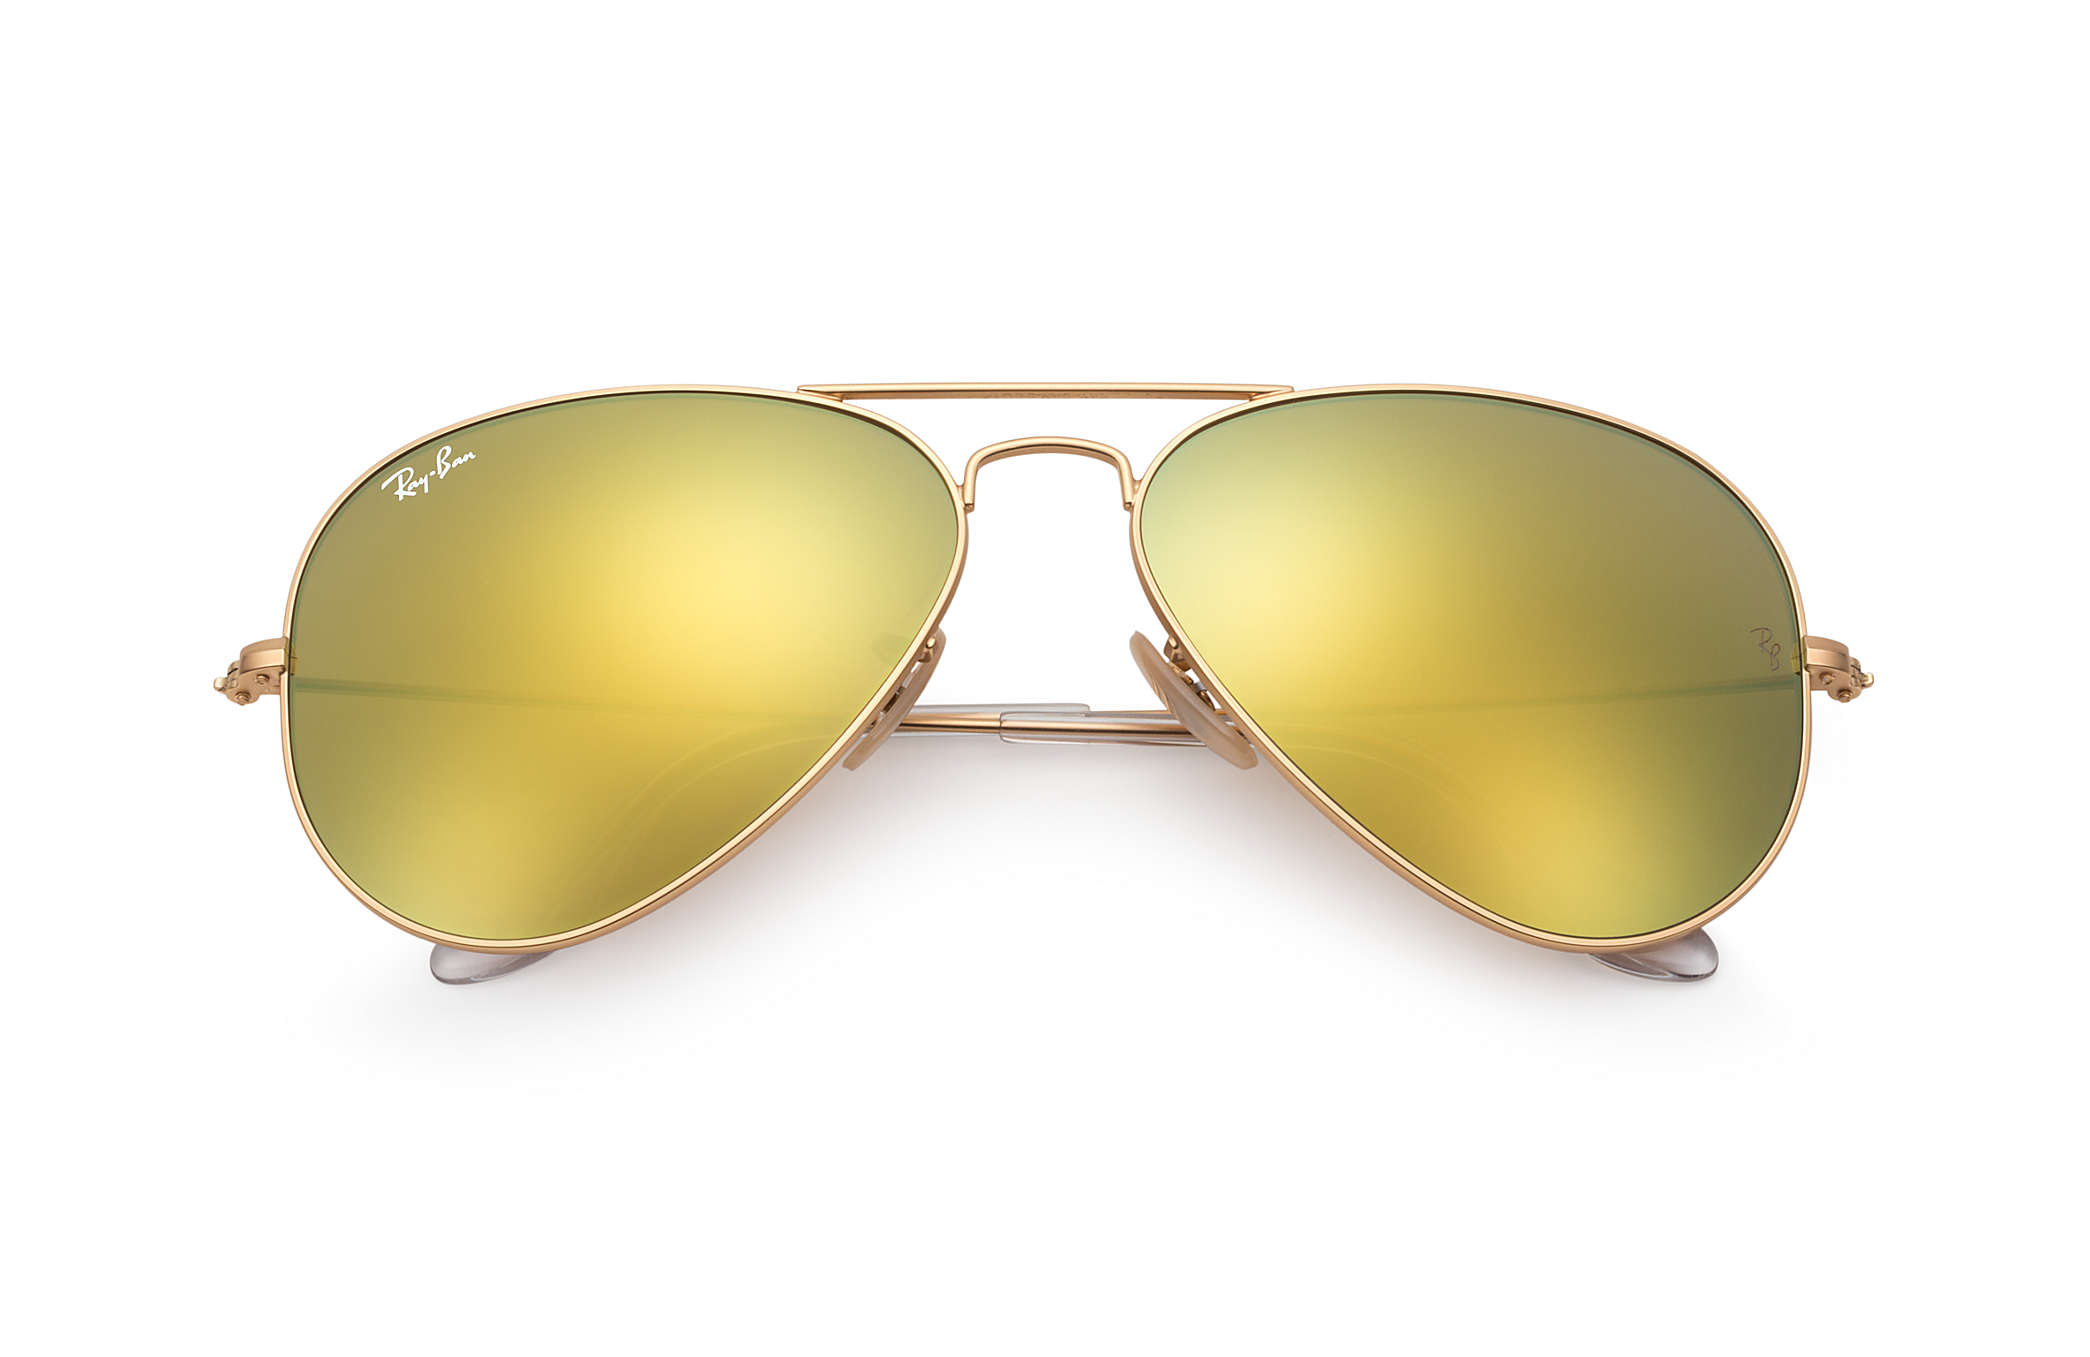 2e42a8037cead Ray-Ban Aviator Flash Lenses RB3025 Gold - Metal - Yellow Lenses ...